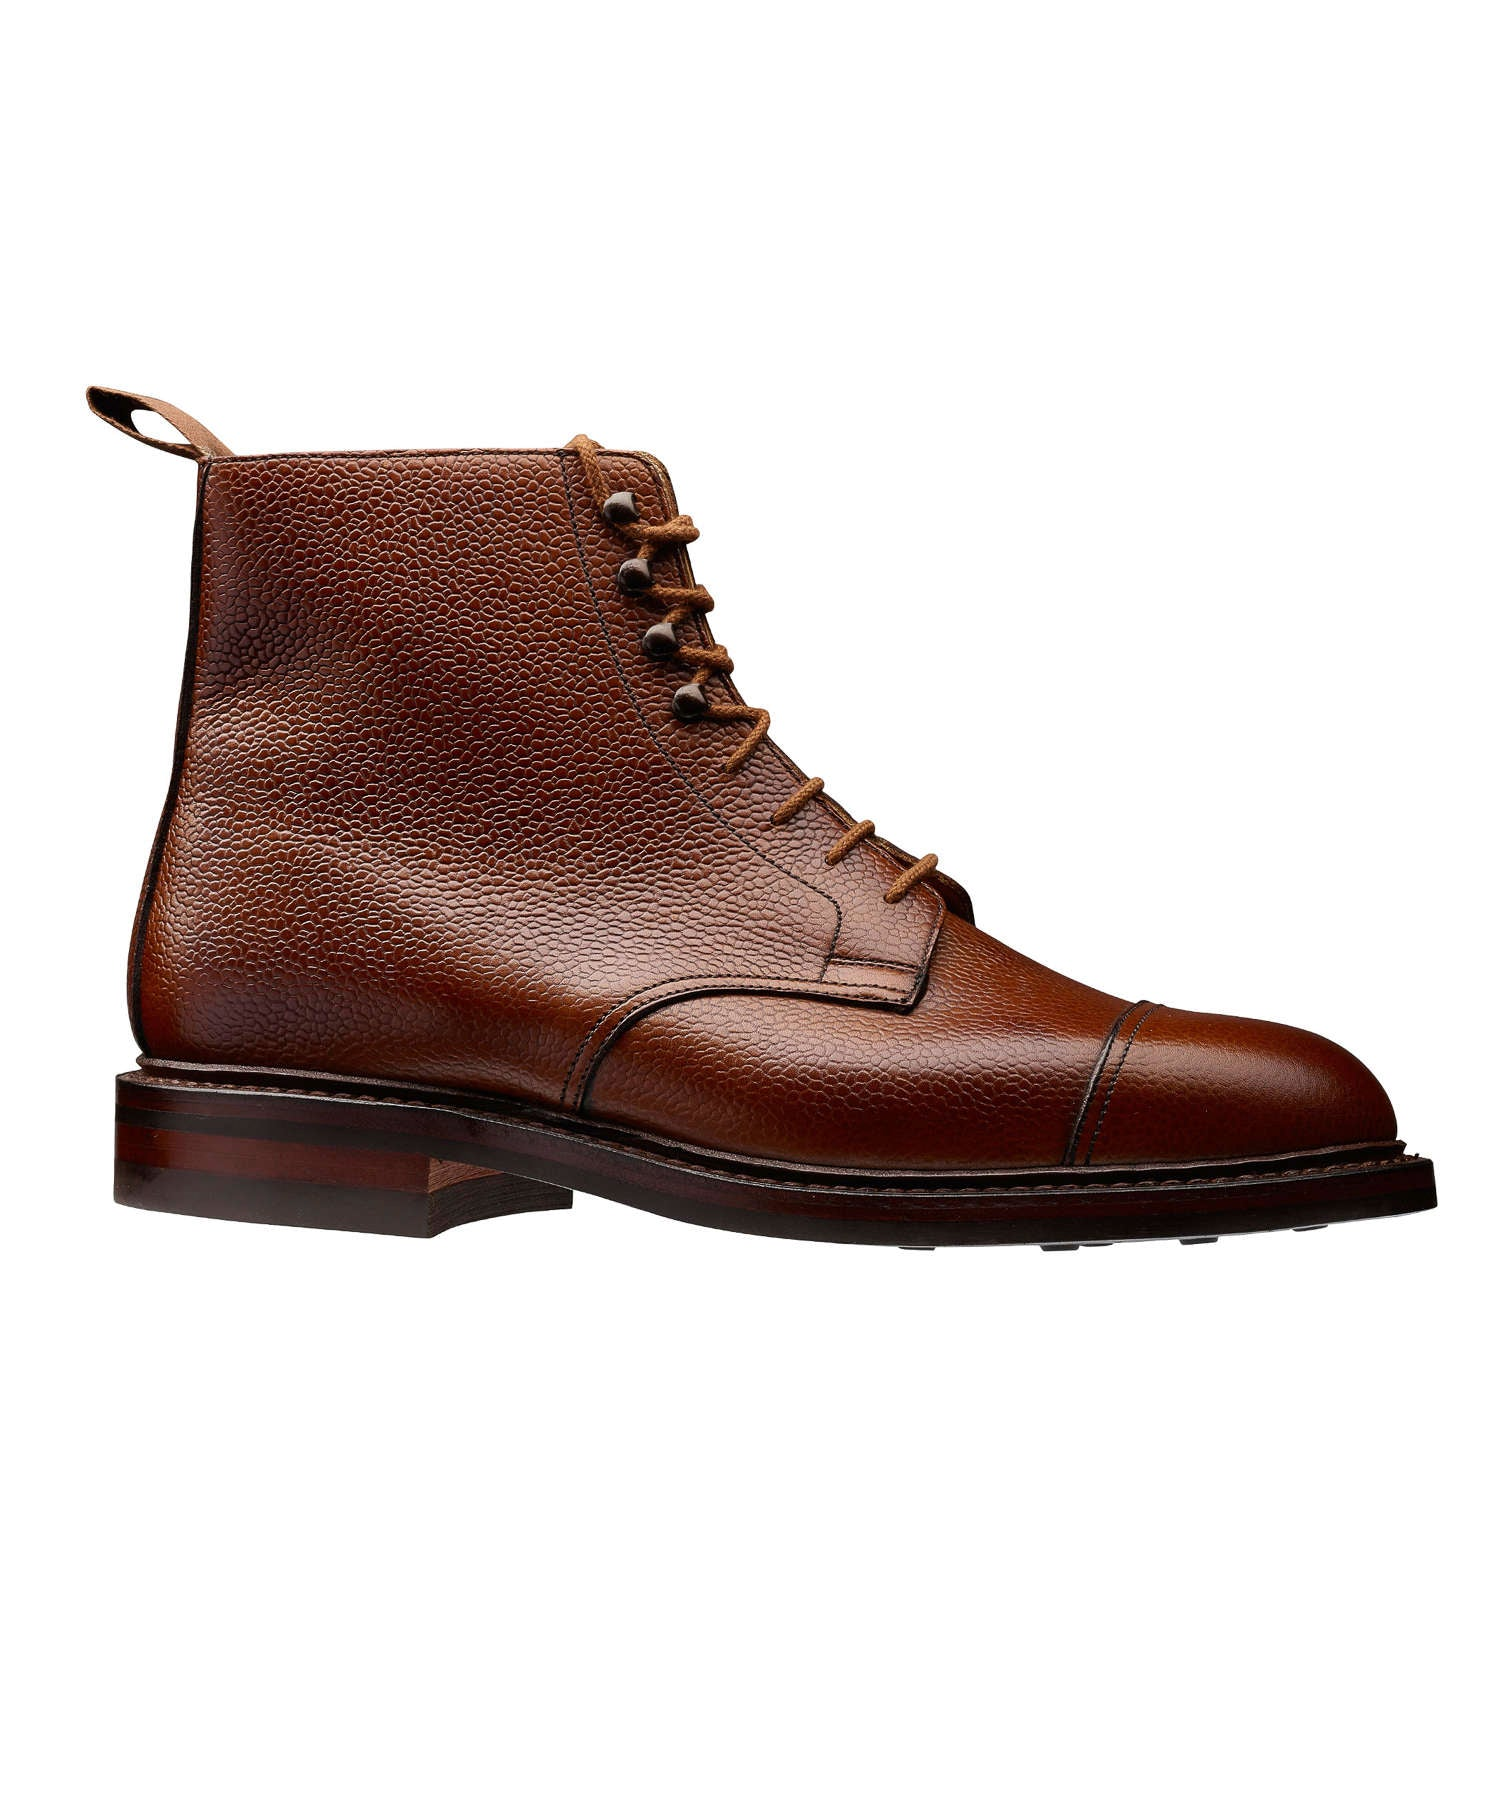 Crockett and Jones Coniston Boot in Tan